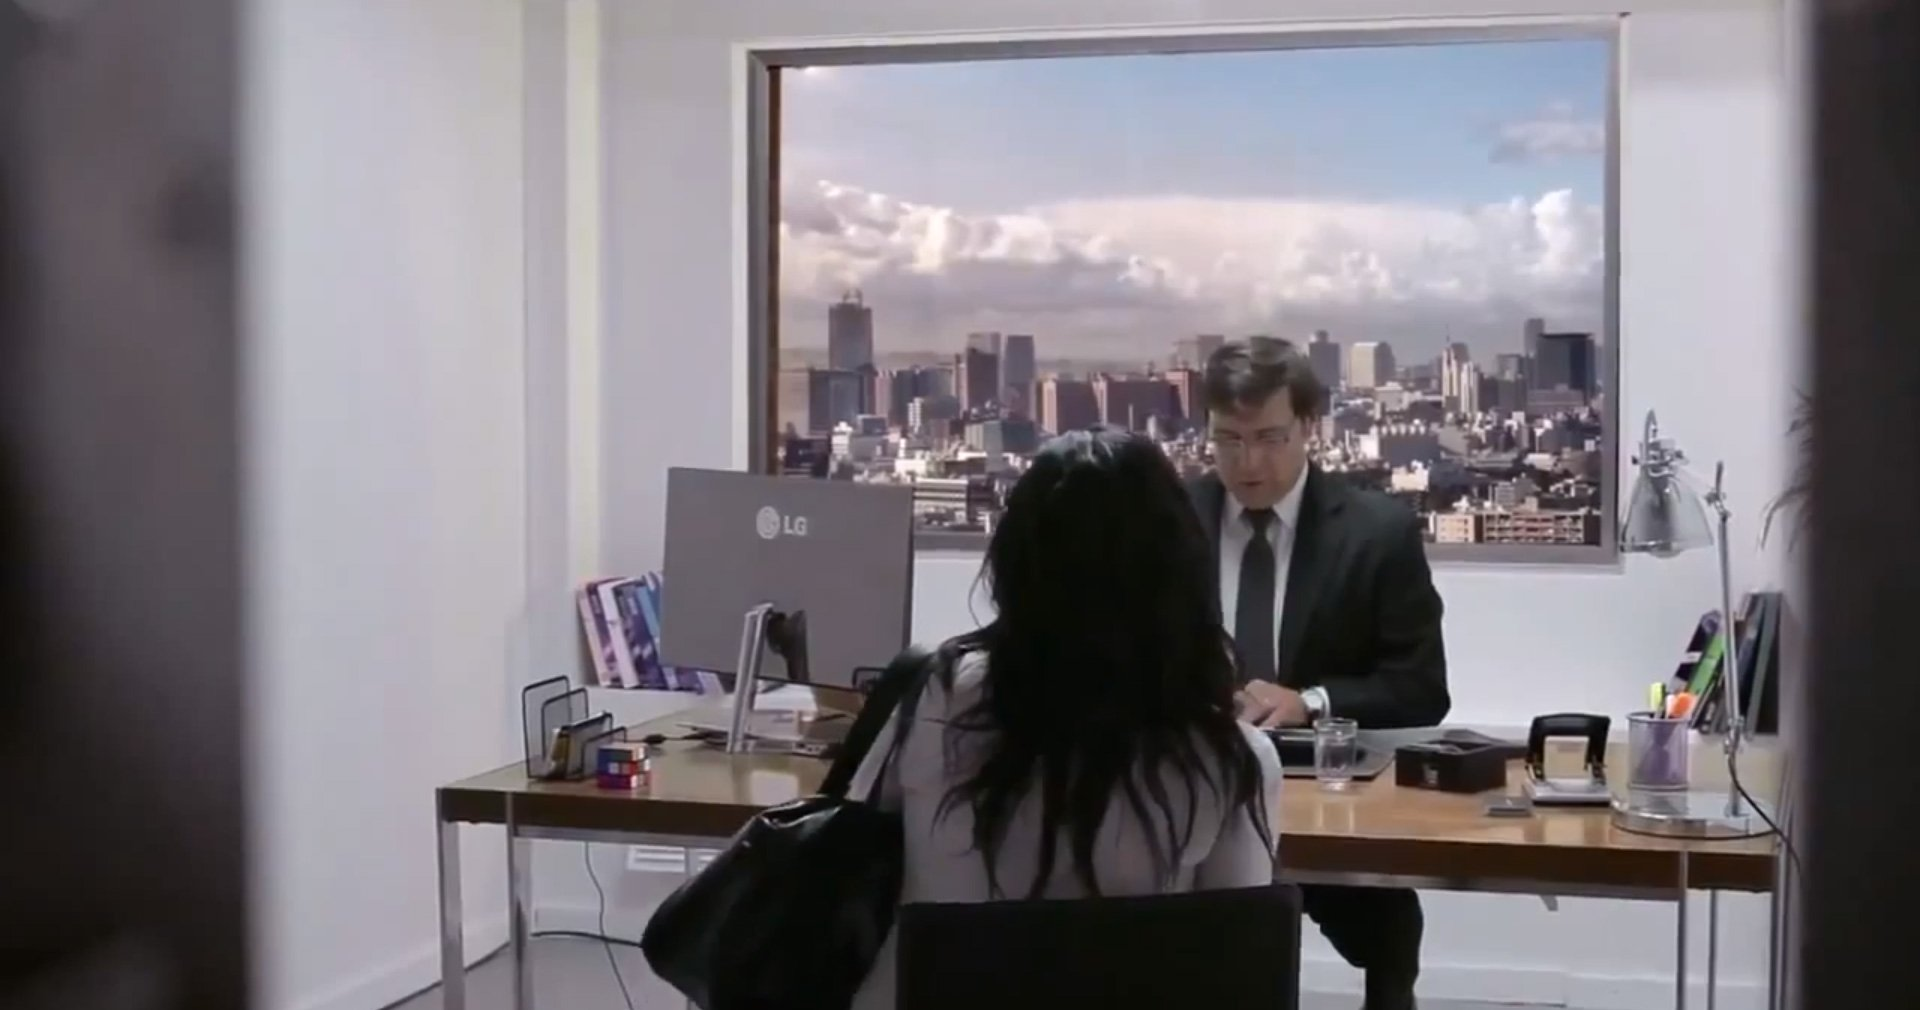 LG Commercial